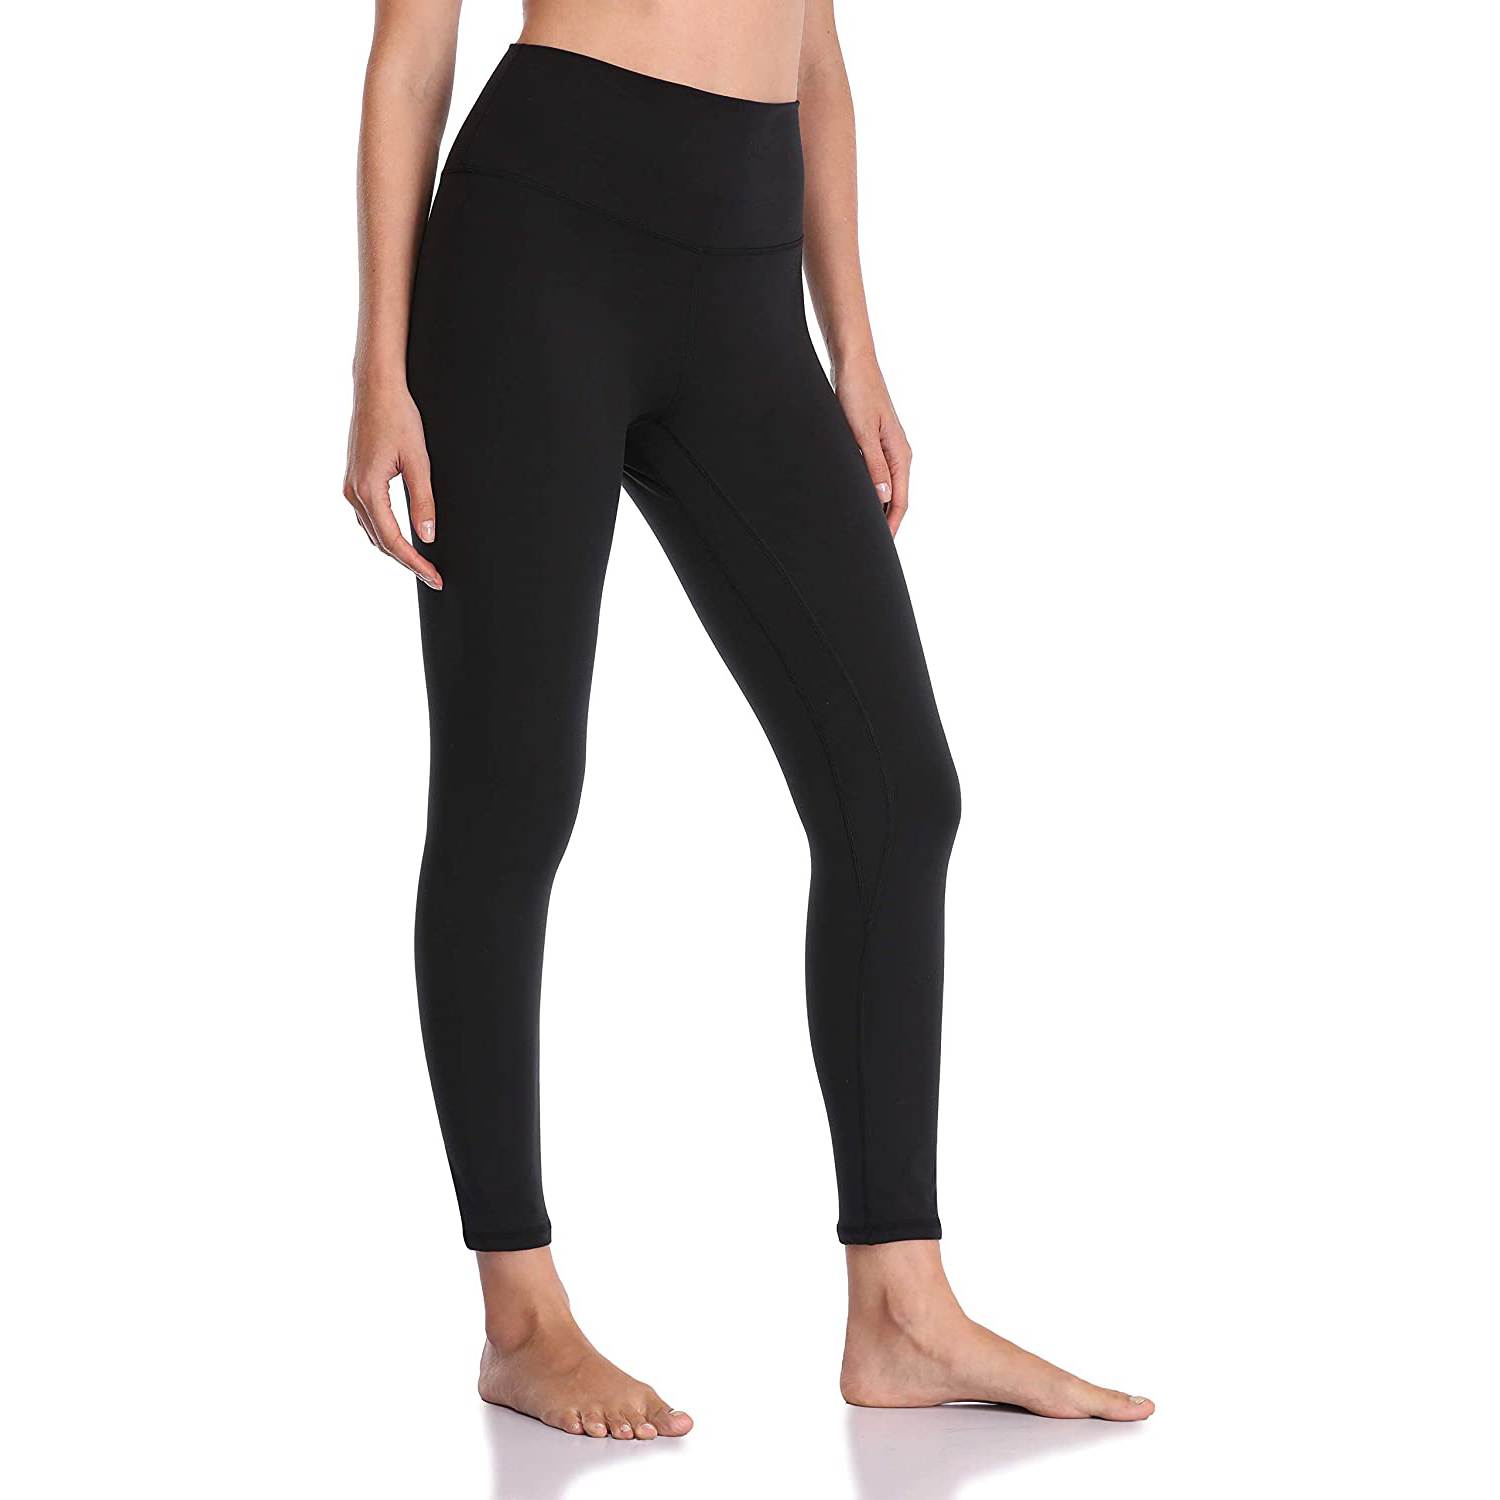 YUNOGA Women's Ultra Soft High Waisted Seamless Leggings